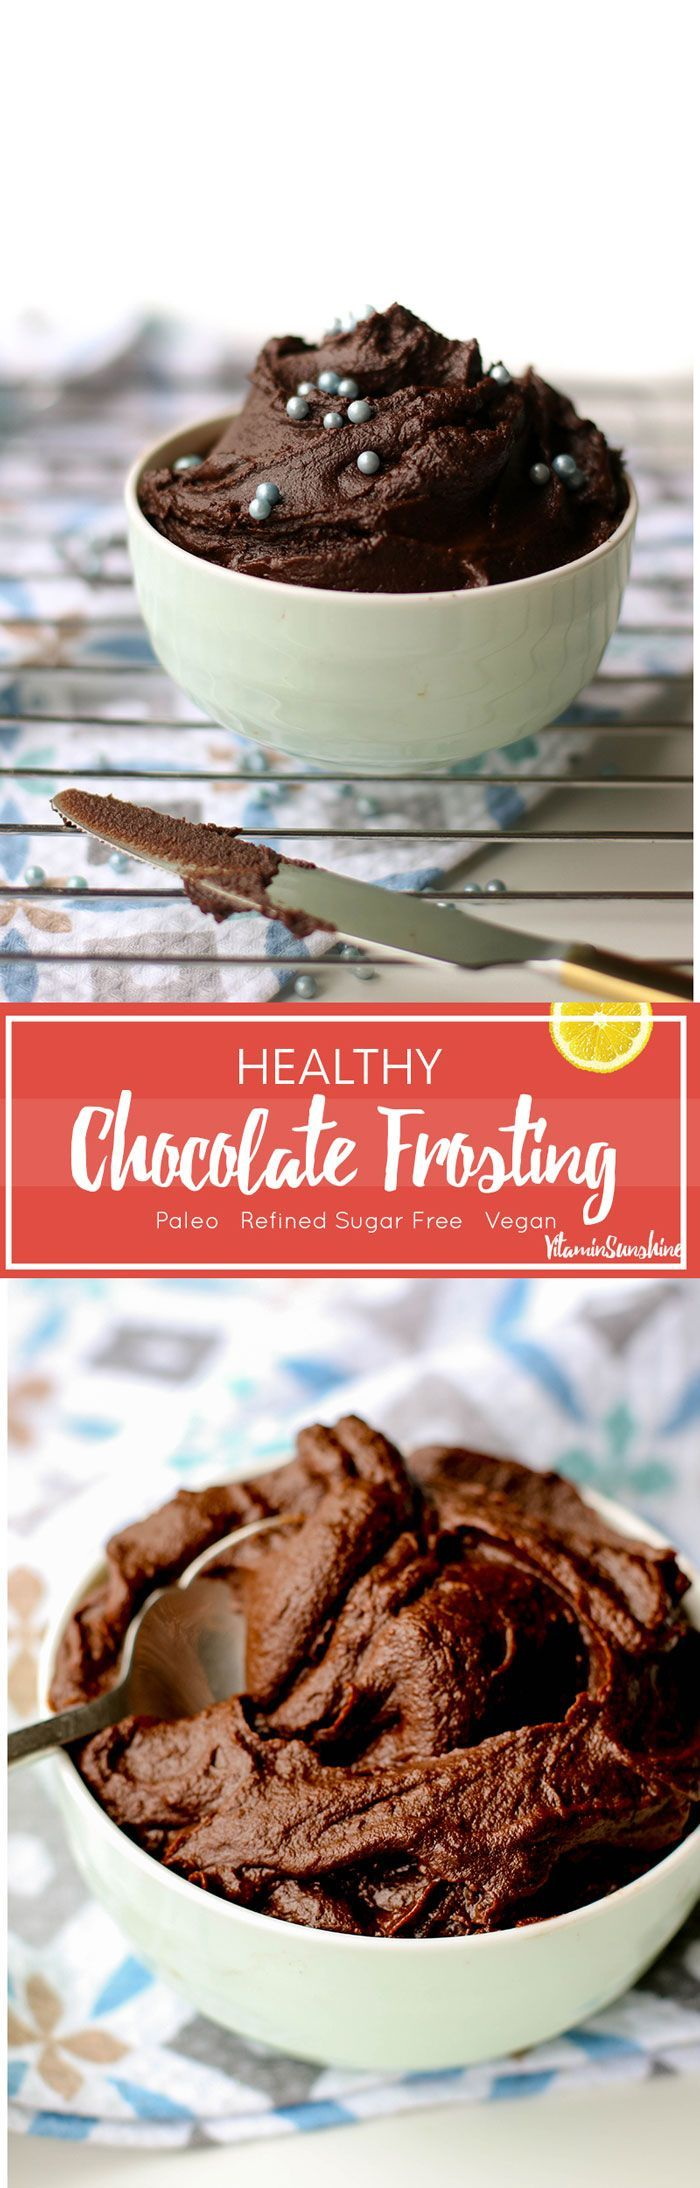 Healthy Chocolate Frosting / This rich and fudgy chocolate frosting is made with a base of sweet potatoes and is naturally sweetened.